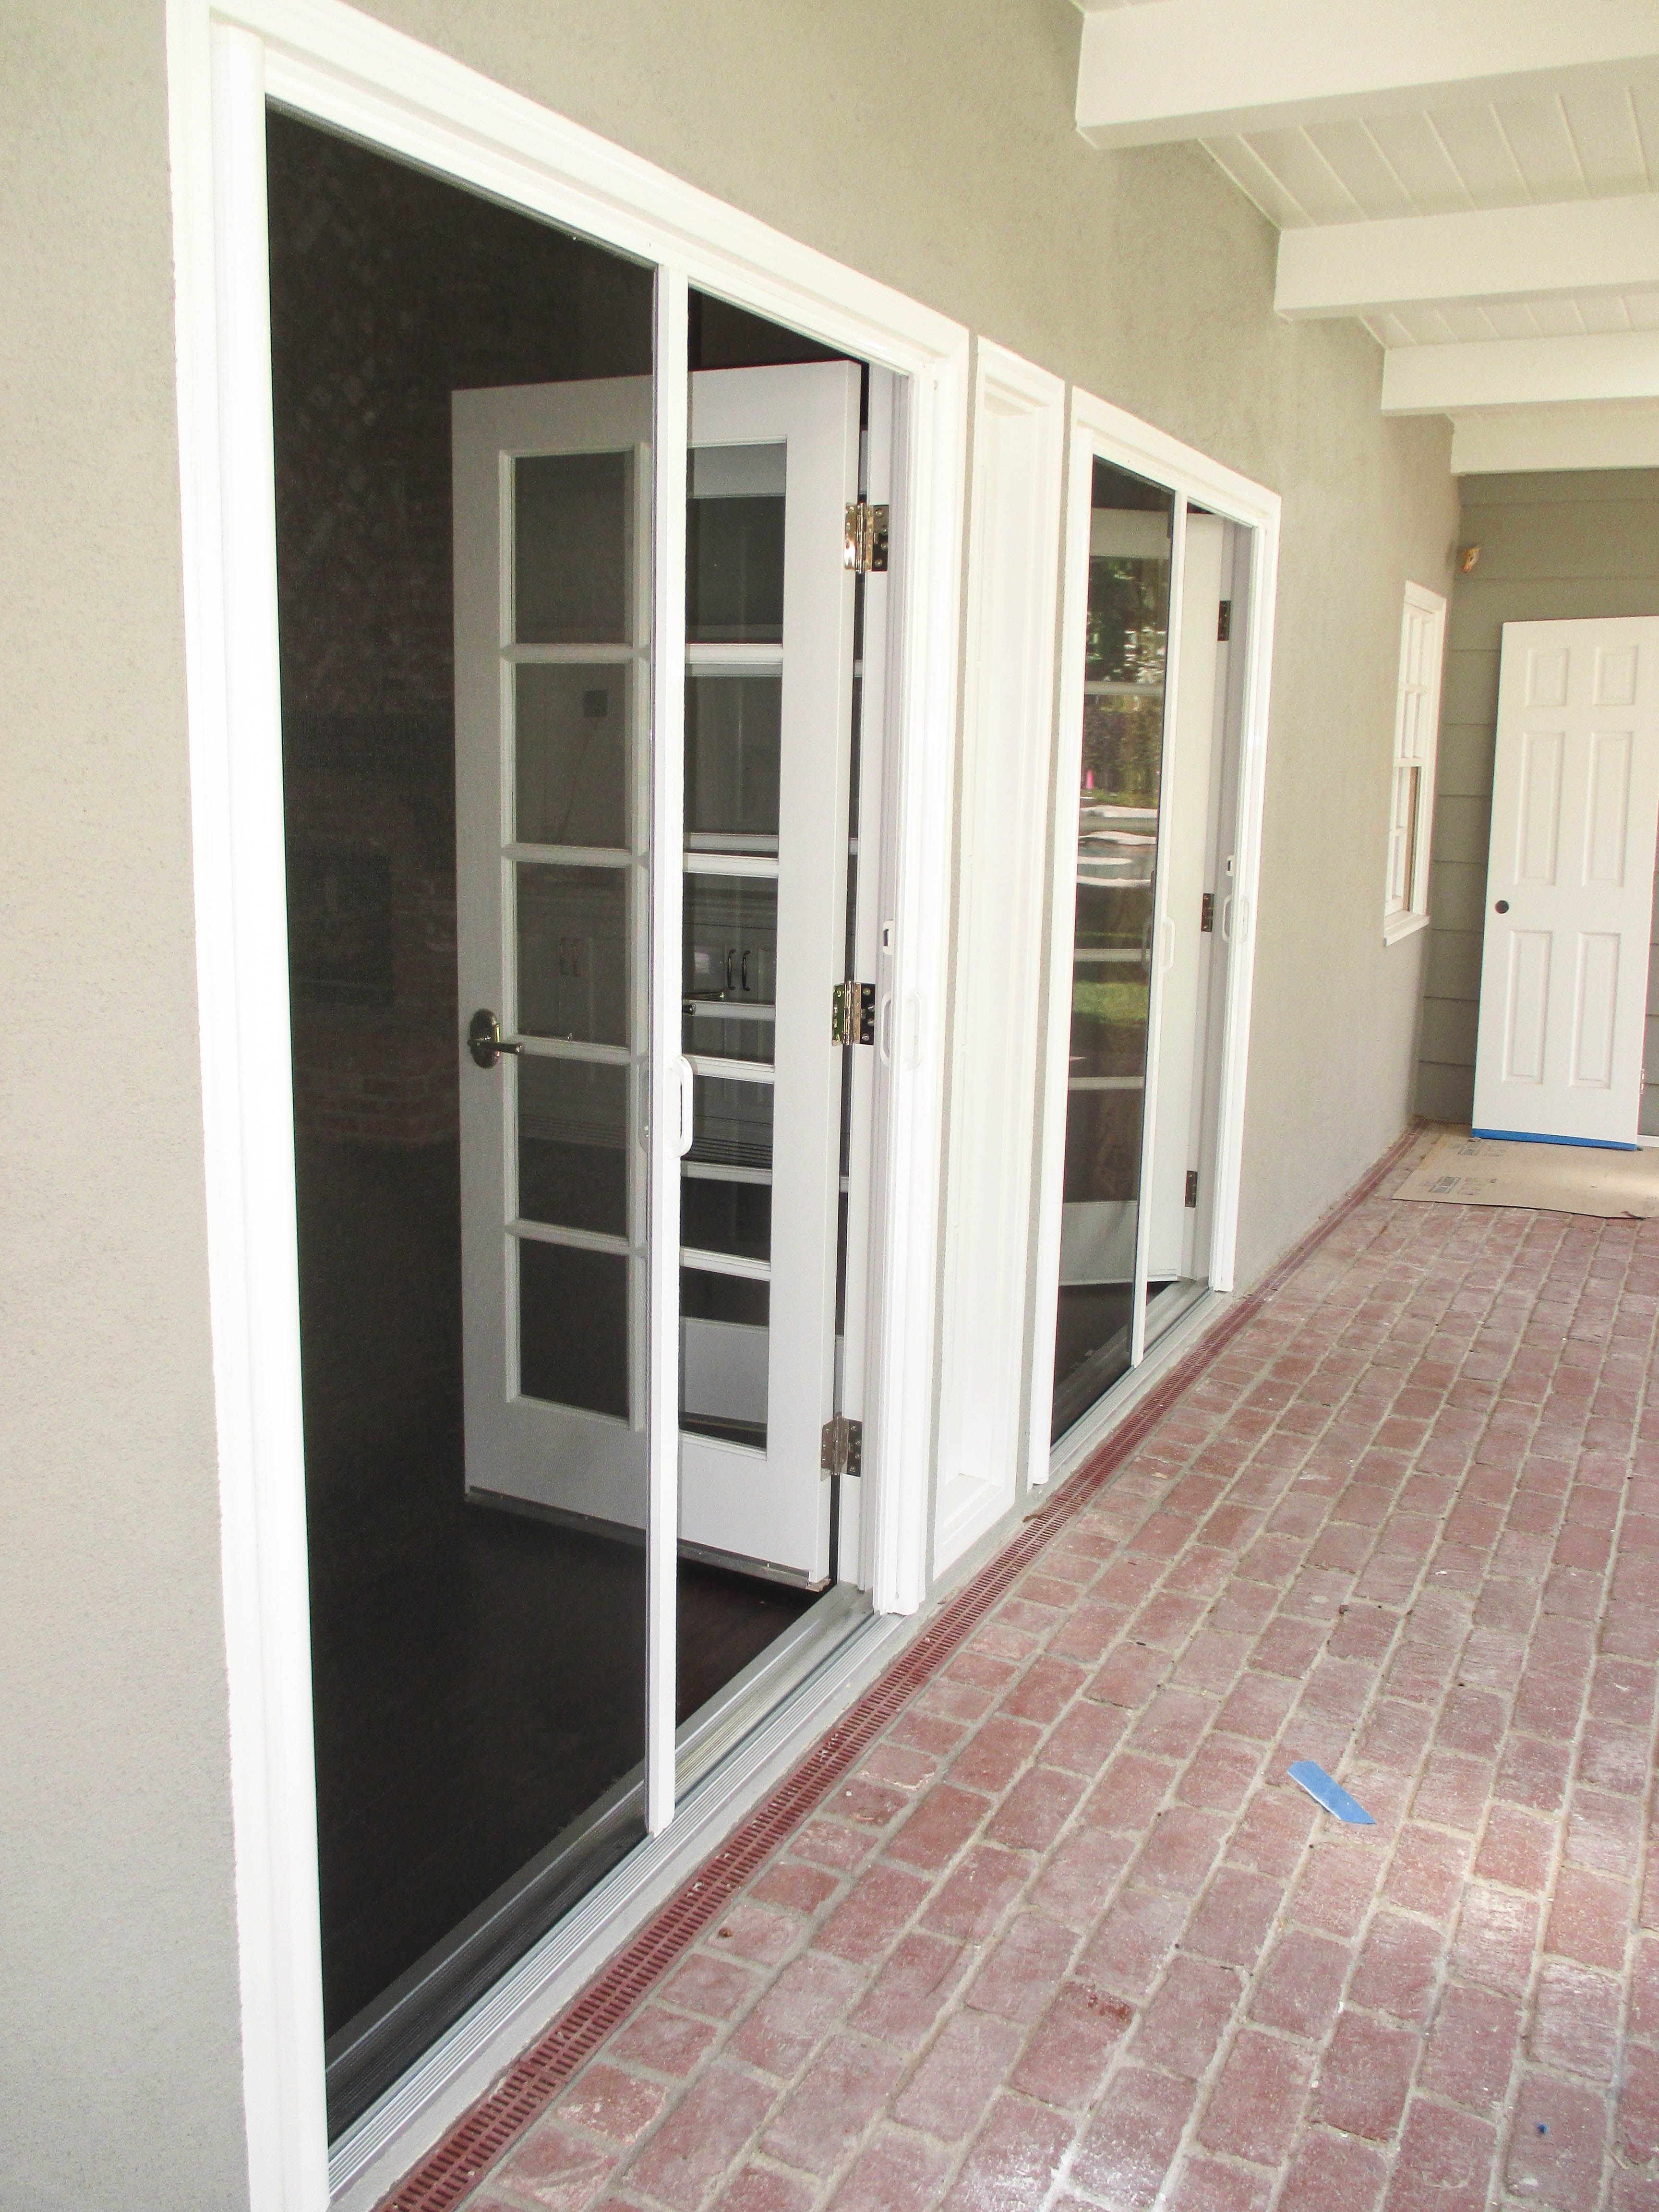 Check Out This Pair Of Double Door Inswing Bright White Stowaway Retractable Screen Doors That Our Team Retractable Screen Door Screen Door Retractable Screen